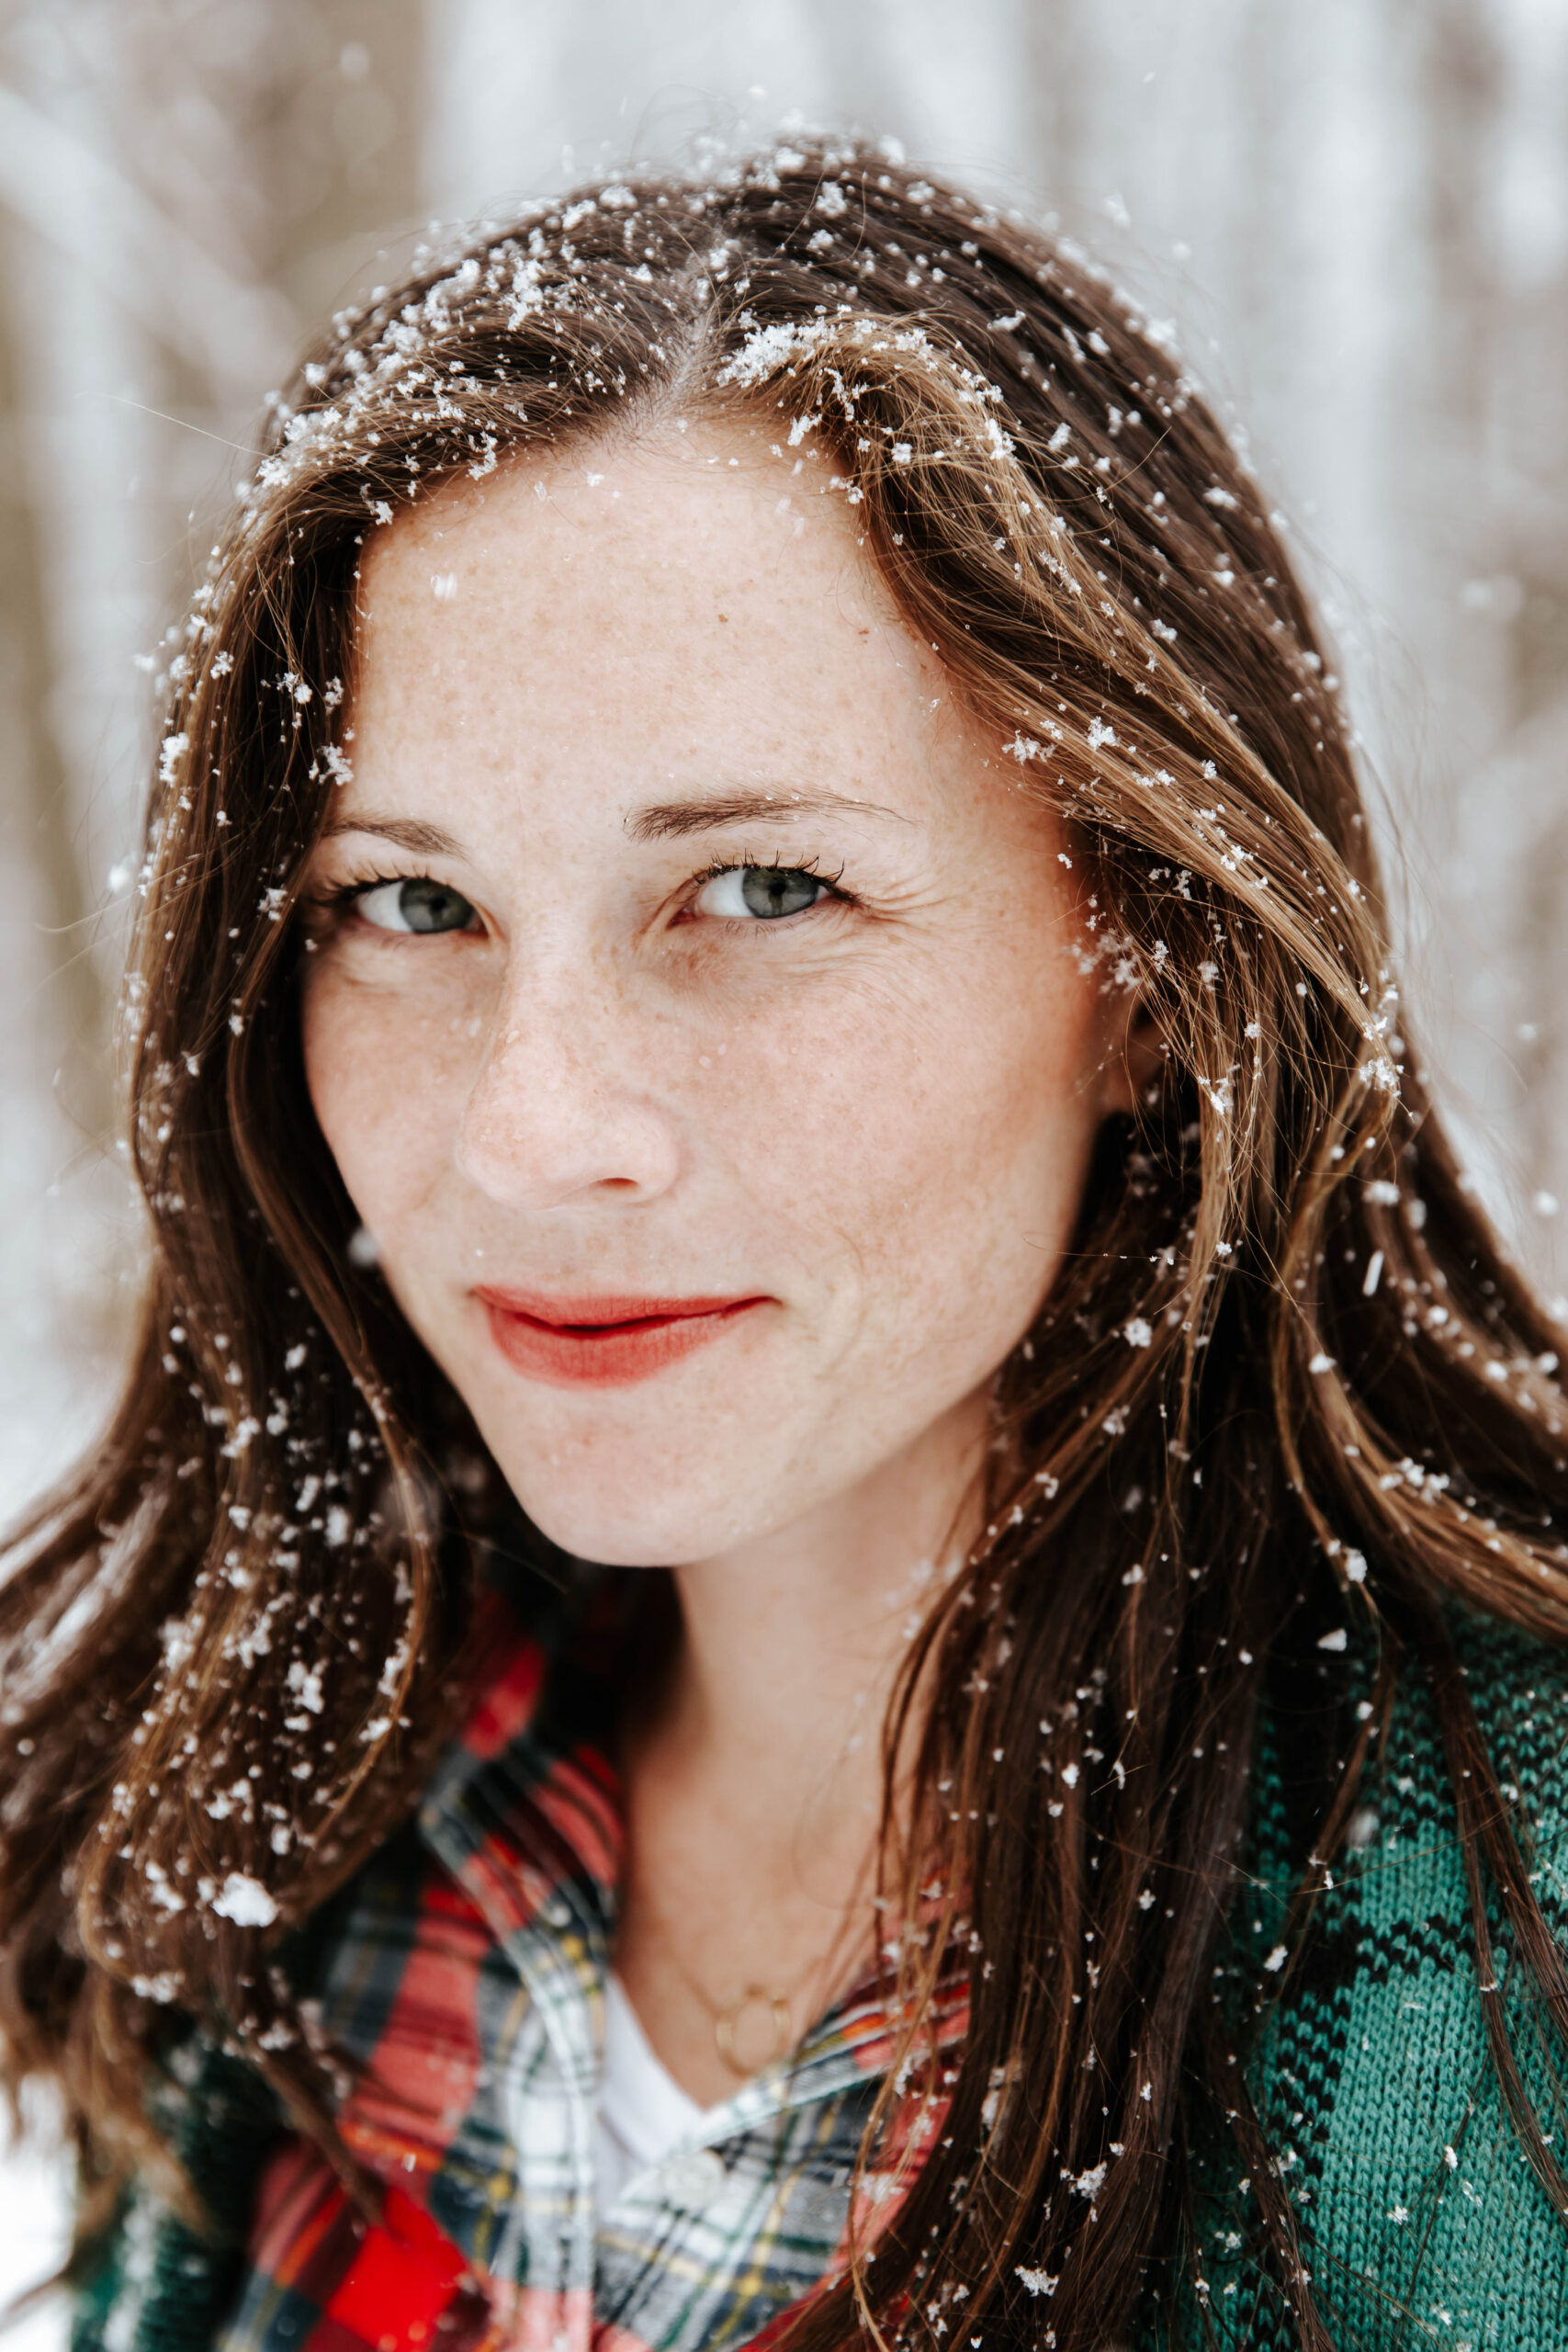 woman wearing red lipstick smiling in snow